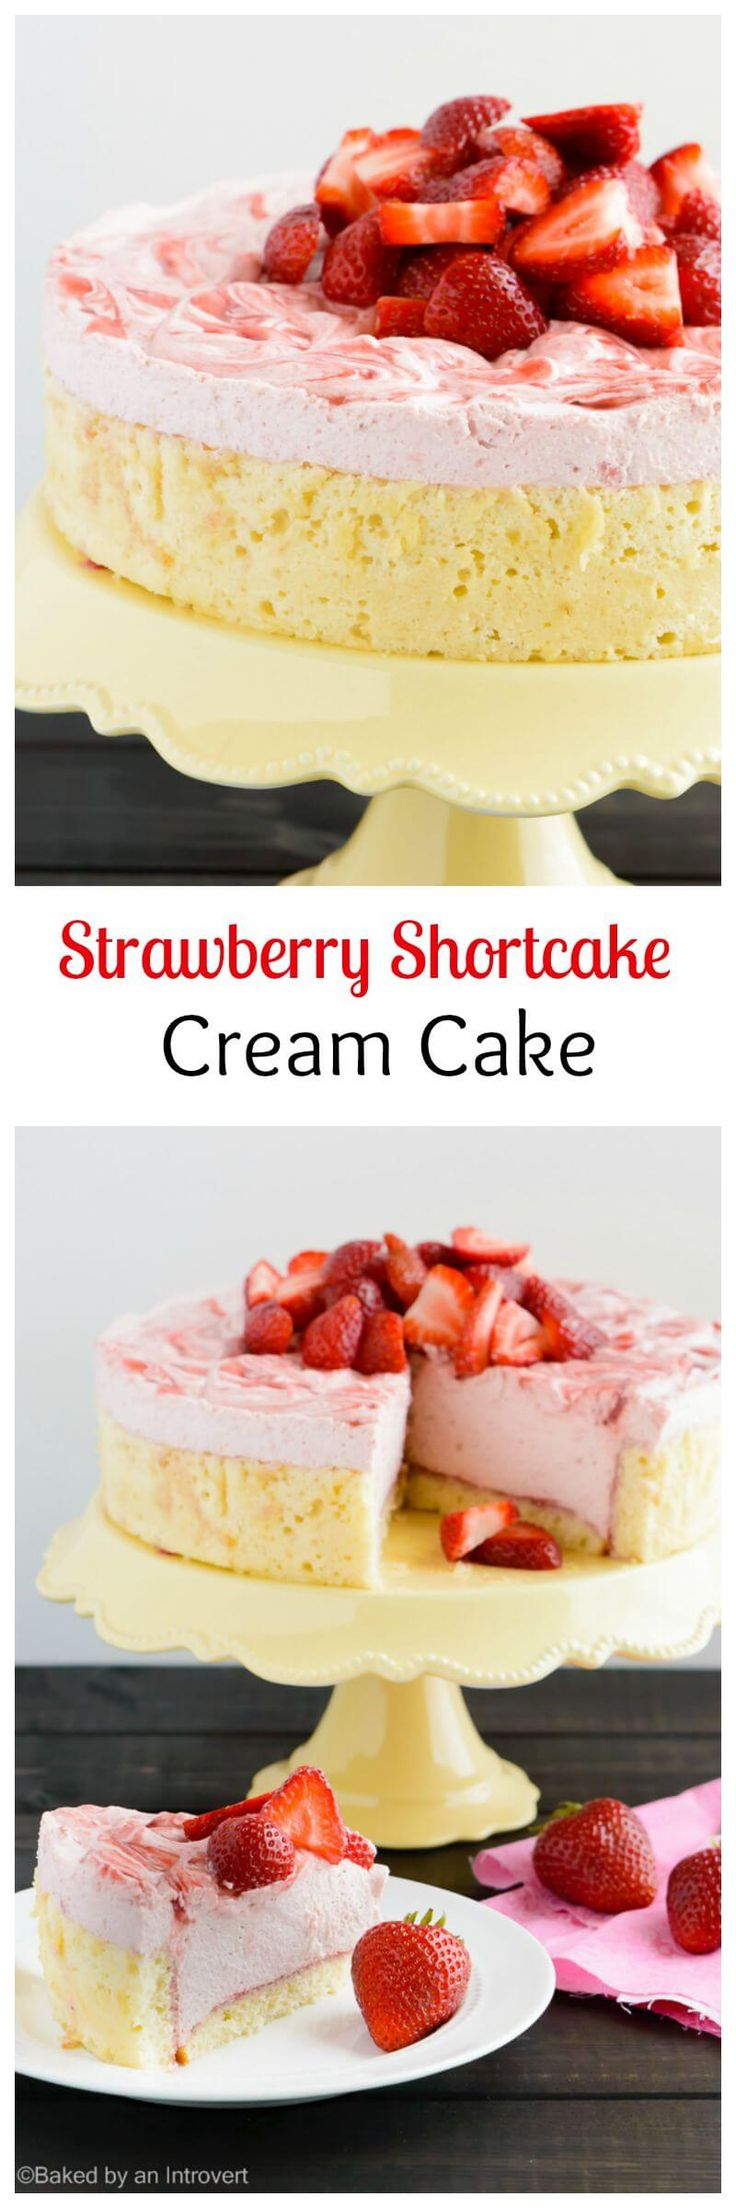 Best 20+ Homemade Strawberry Shortcake ideas on Pinterest ...